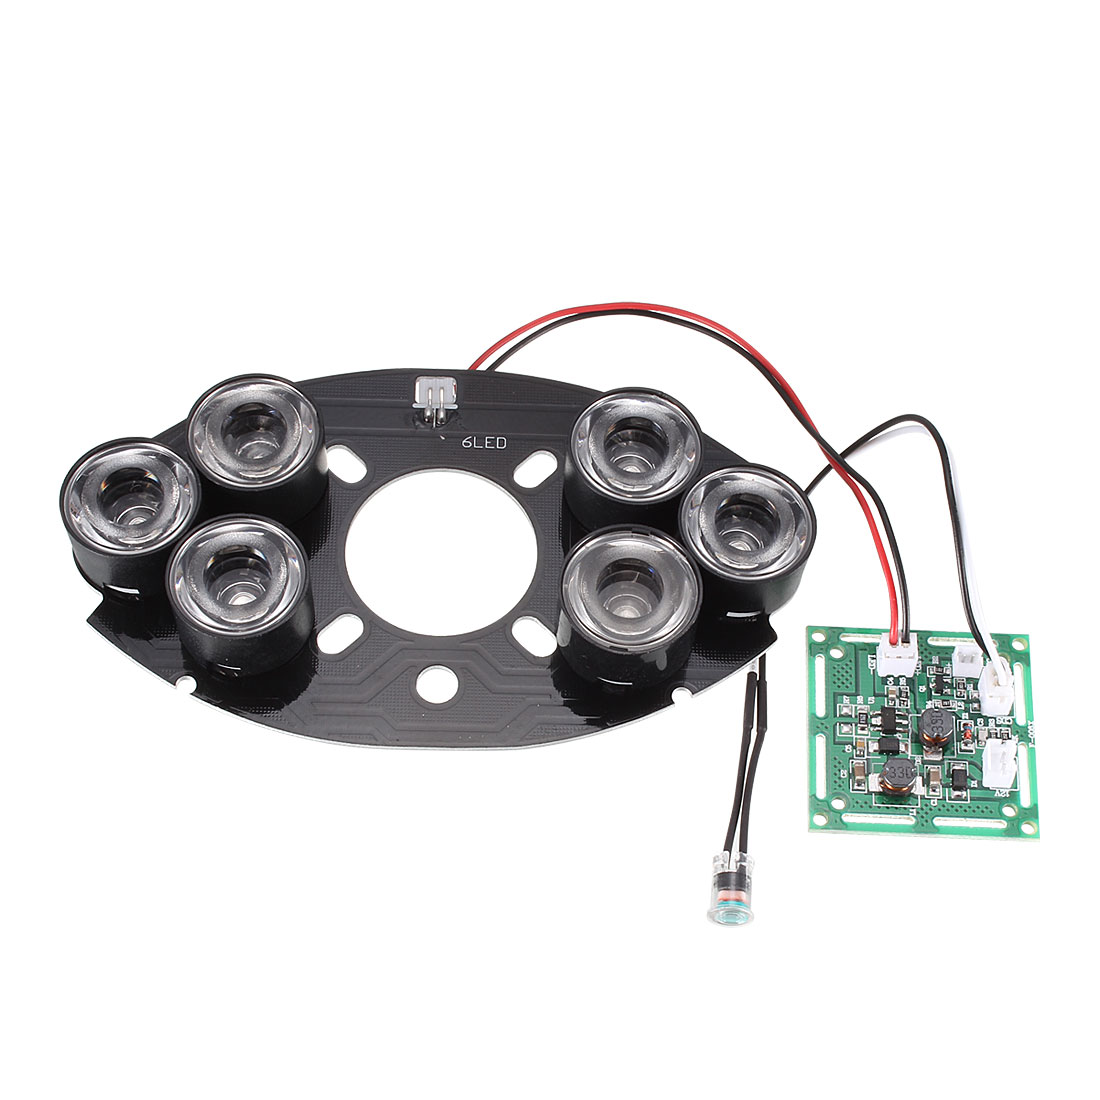 6 High Power 23mm Diameter Infrared IR LED Lamp Oval Board Module For CCTV Camera